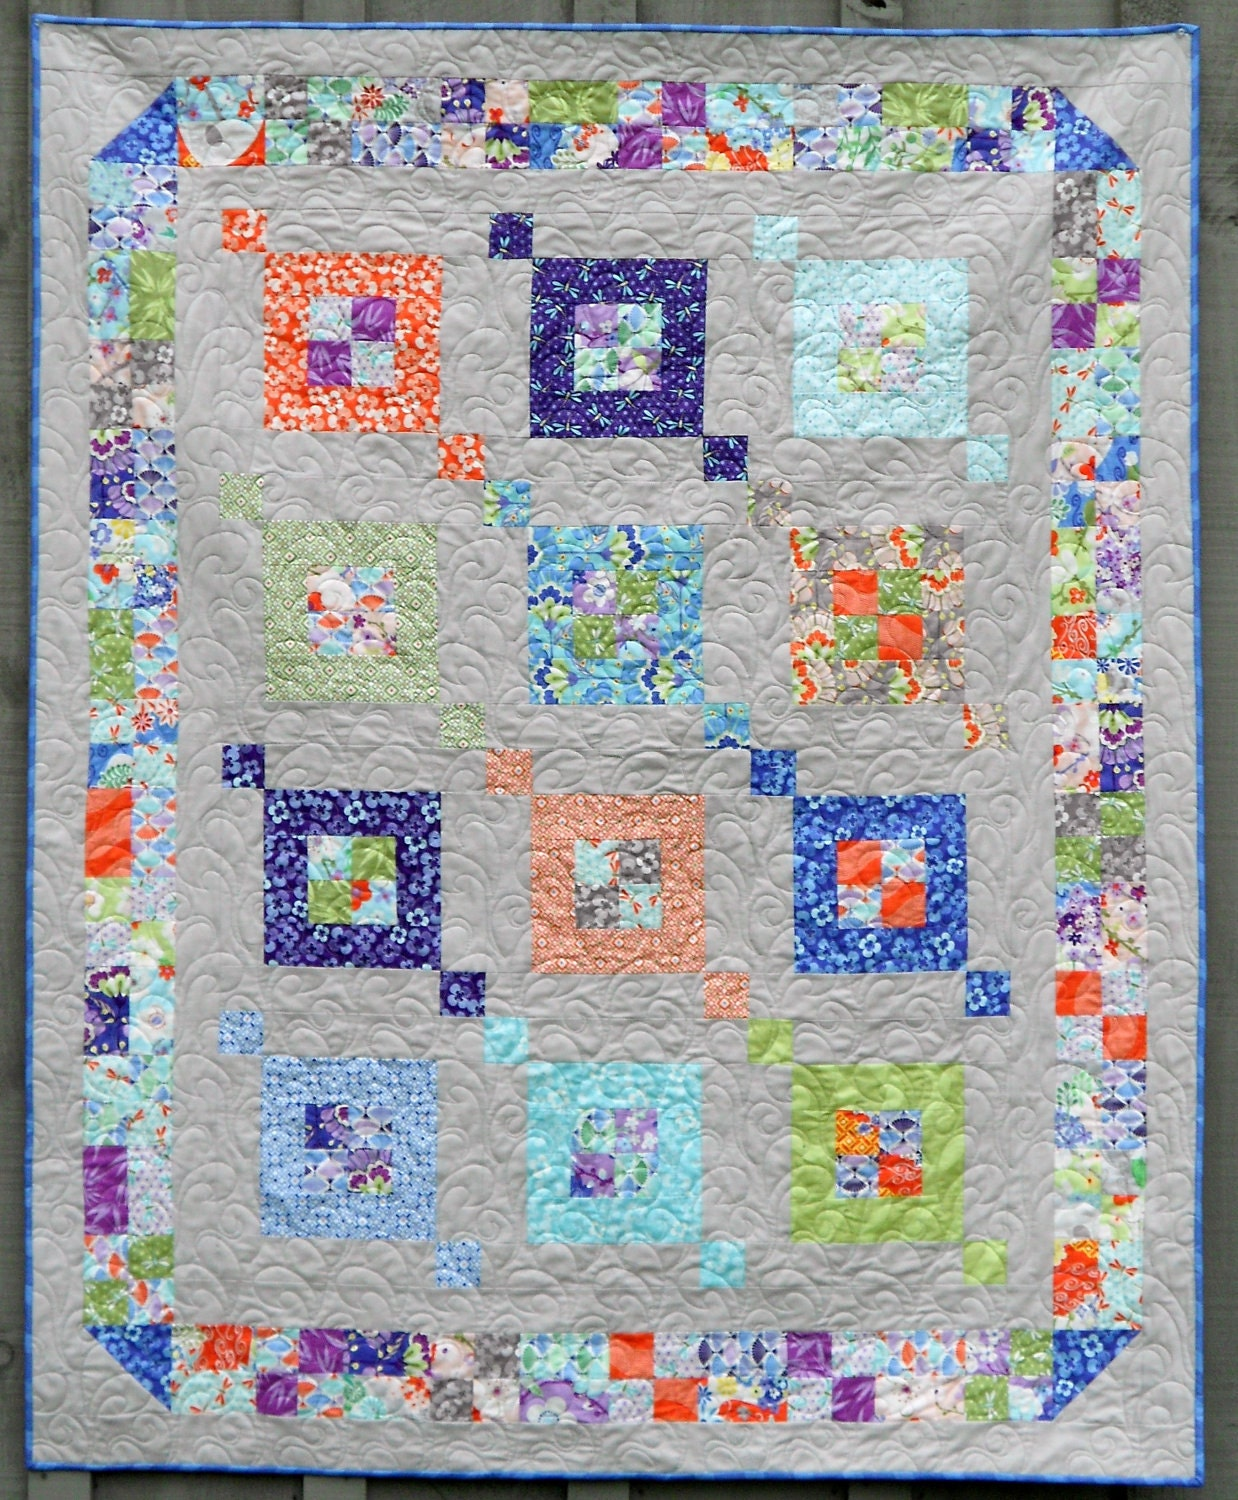 Crib Quilt Size: Modern Quilt Pattern Fair & Square Sizes Crib To Queen